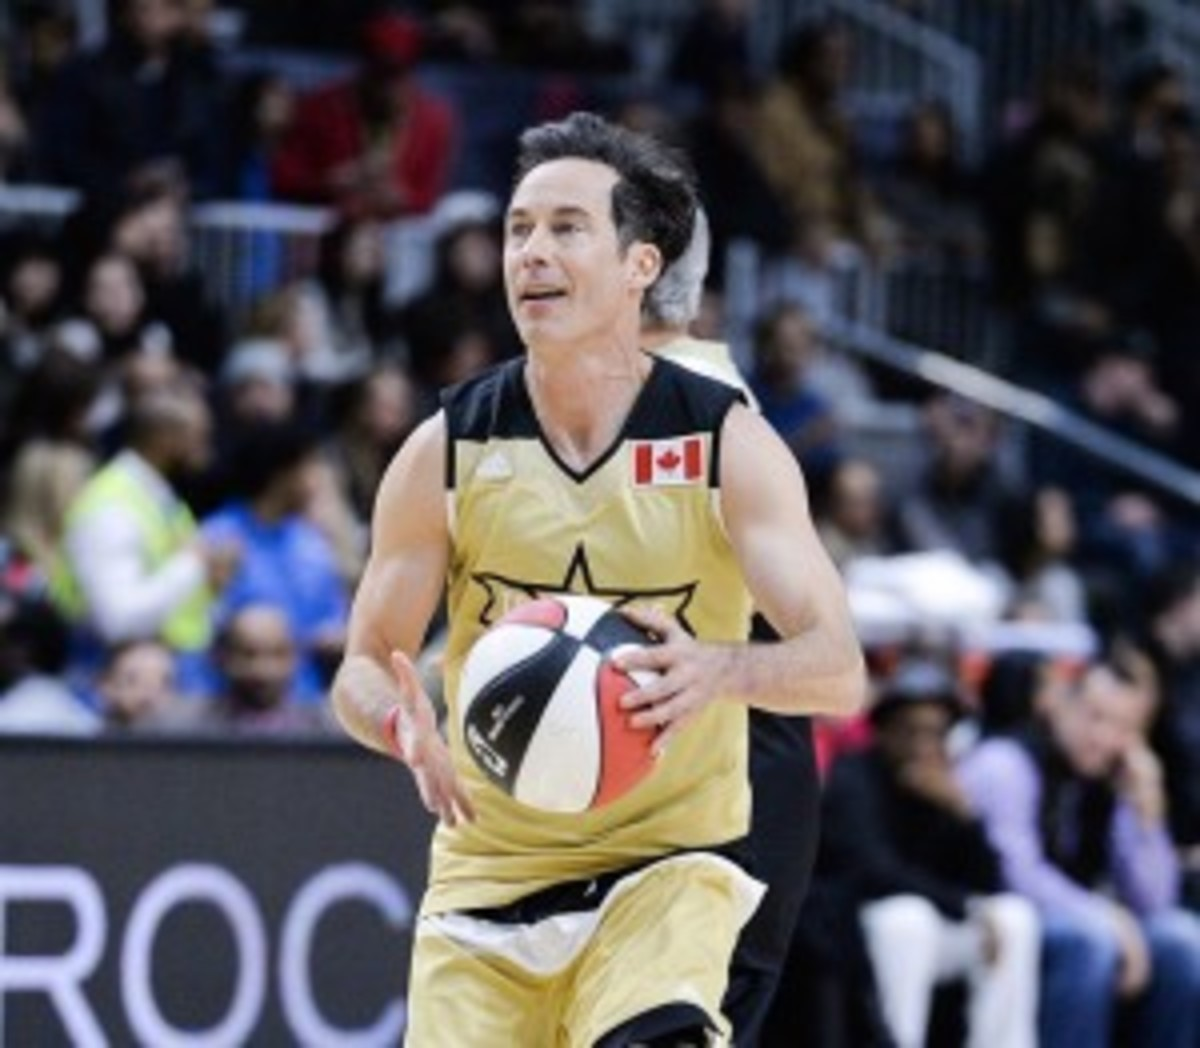 Tom Cavanagh playing for the Canadian team in an NBA All-Star Celebrity Game